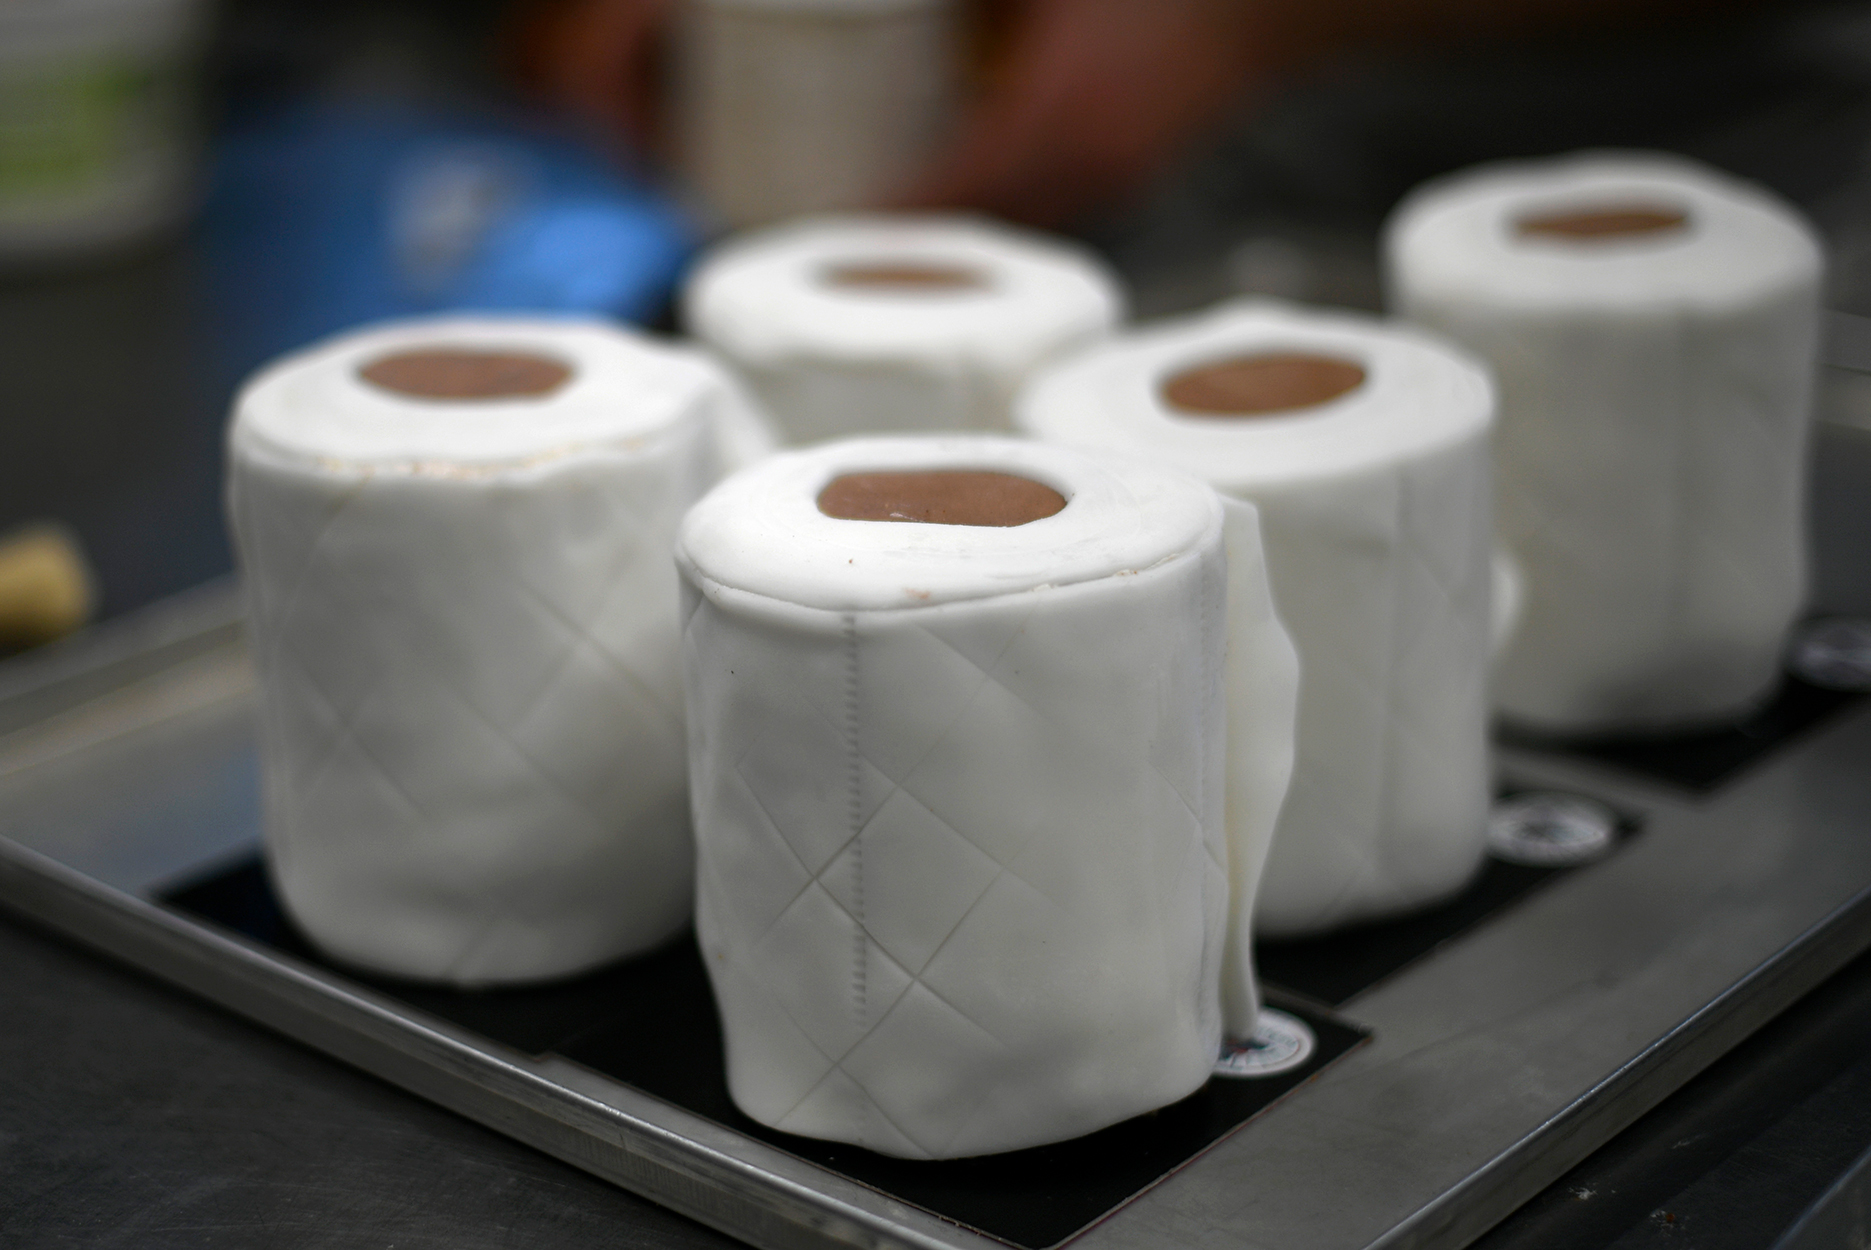 Cakes made to look like toilet paper in Germany